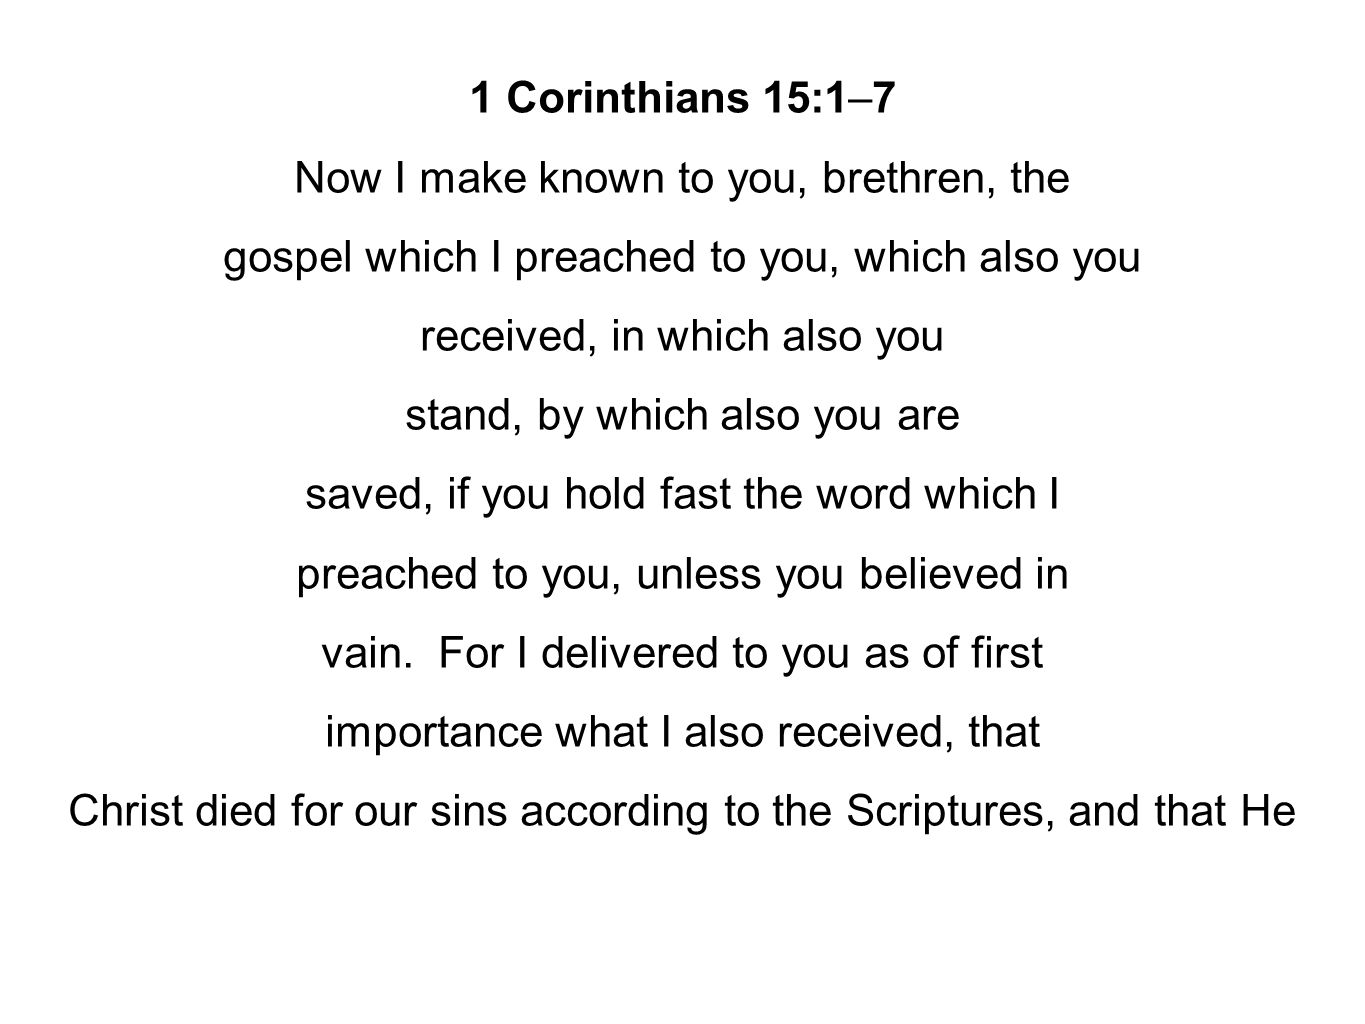 1 Corinthians 15:1–7 Now I make known to you, brethren, the gospel which I preached to you, which also you received, in which also you stand, by which also you are saved, if you hold fast the word which I preached to you, unless you believed in vain.